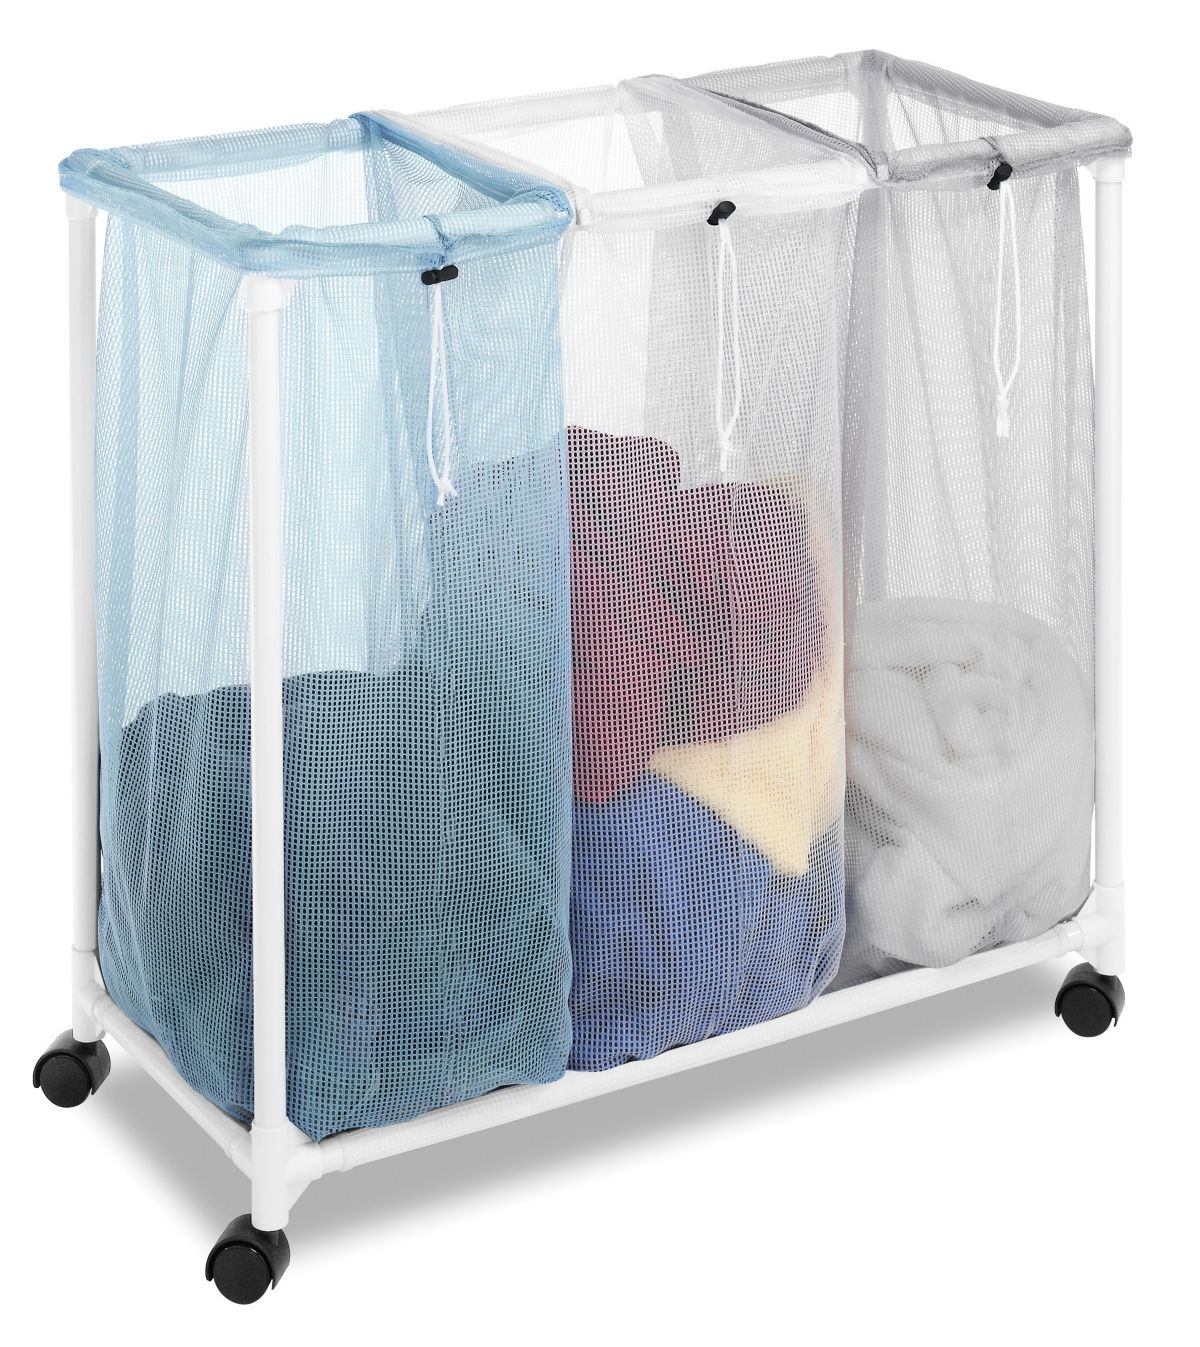 Whitmor Triple Laundry Sorter With Wheels Reviews Cleaning